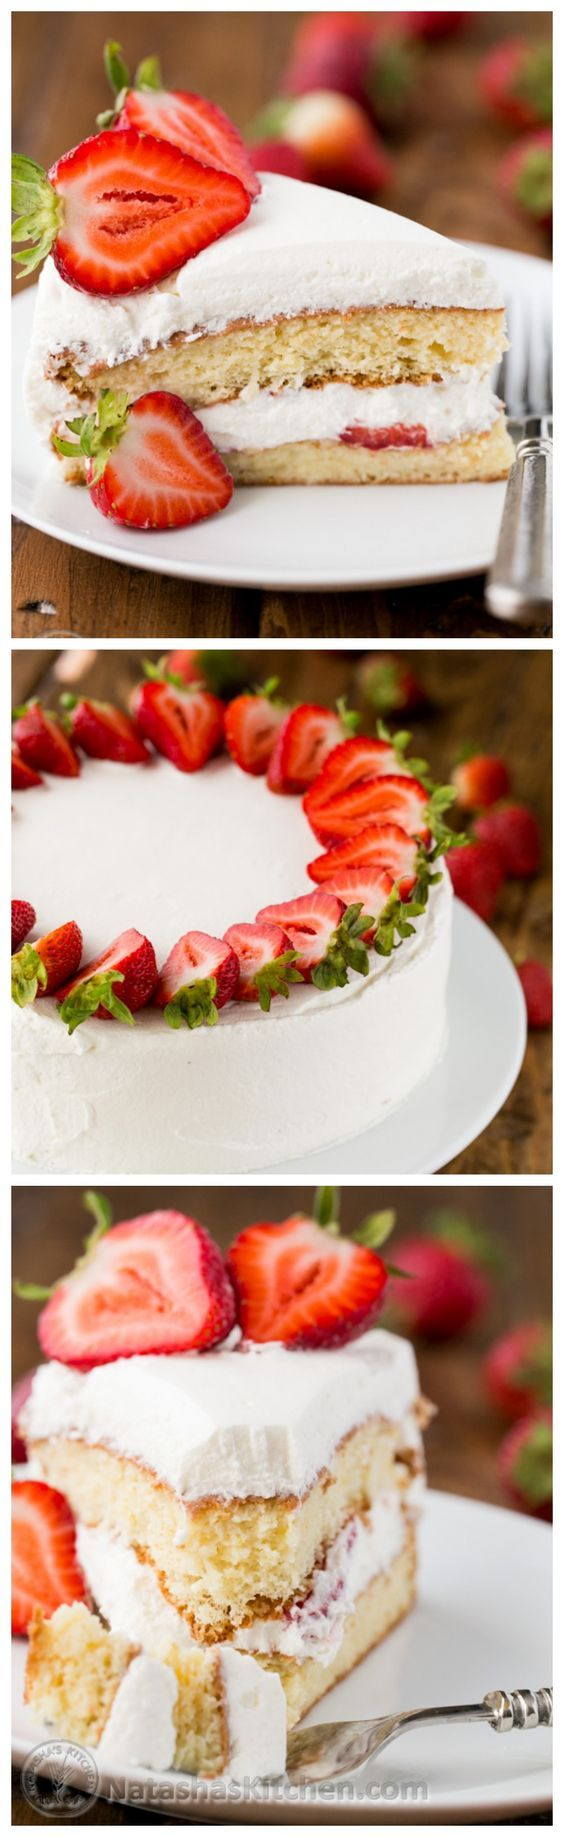 The famous tres leches cake is now a layered cake; perfect for any special occasion.